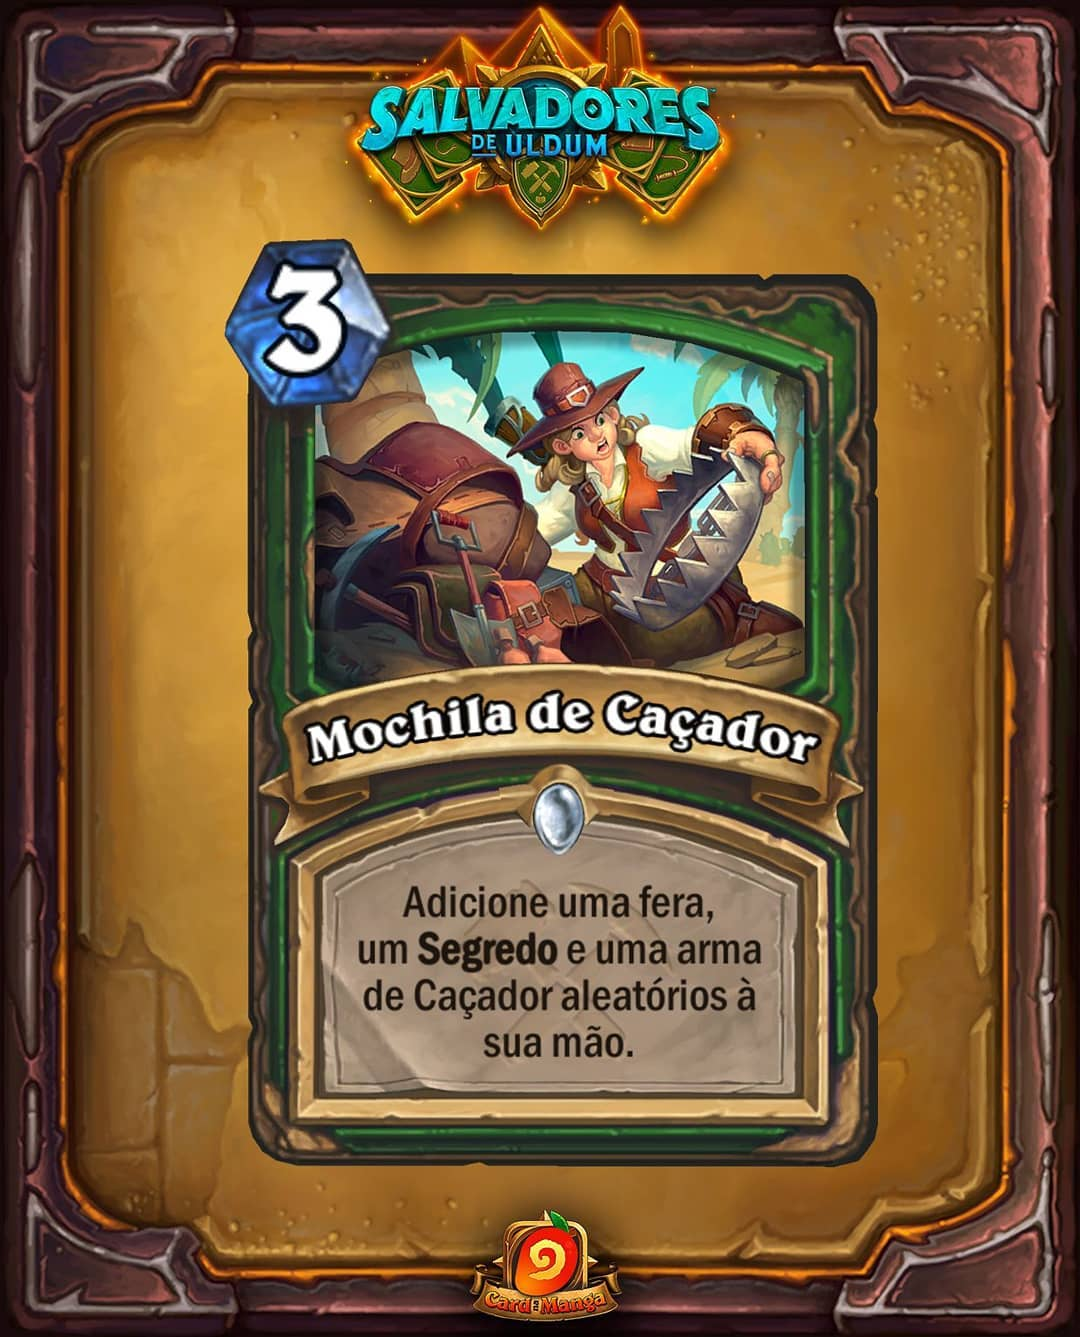 Mochila de Caçador - Card Reveal de Hearthstone Salvadores de Uldum - Hunter's Pack